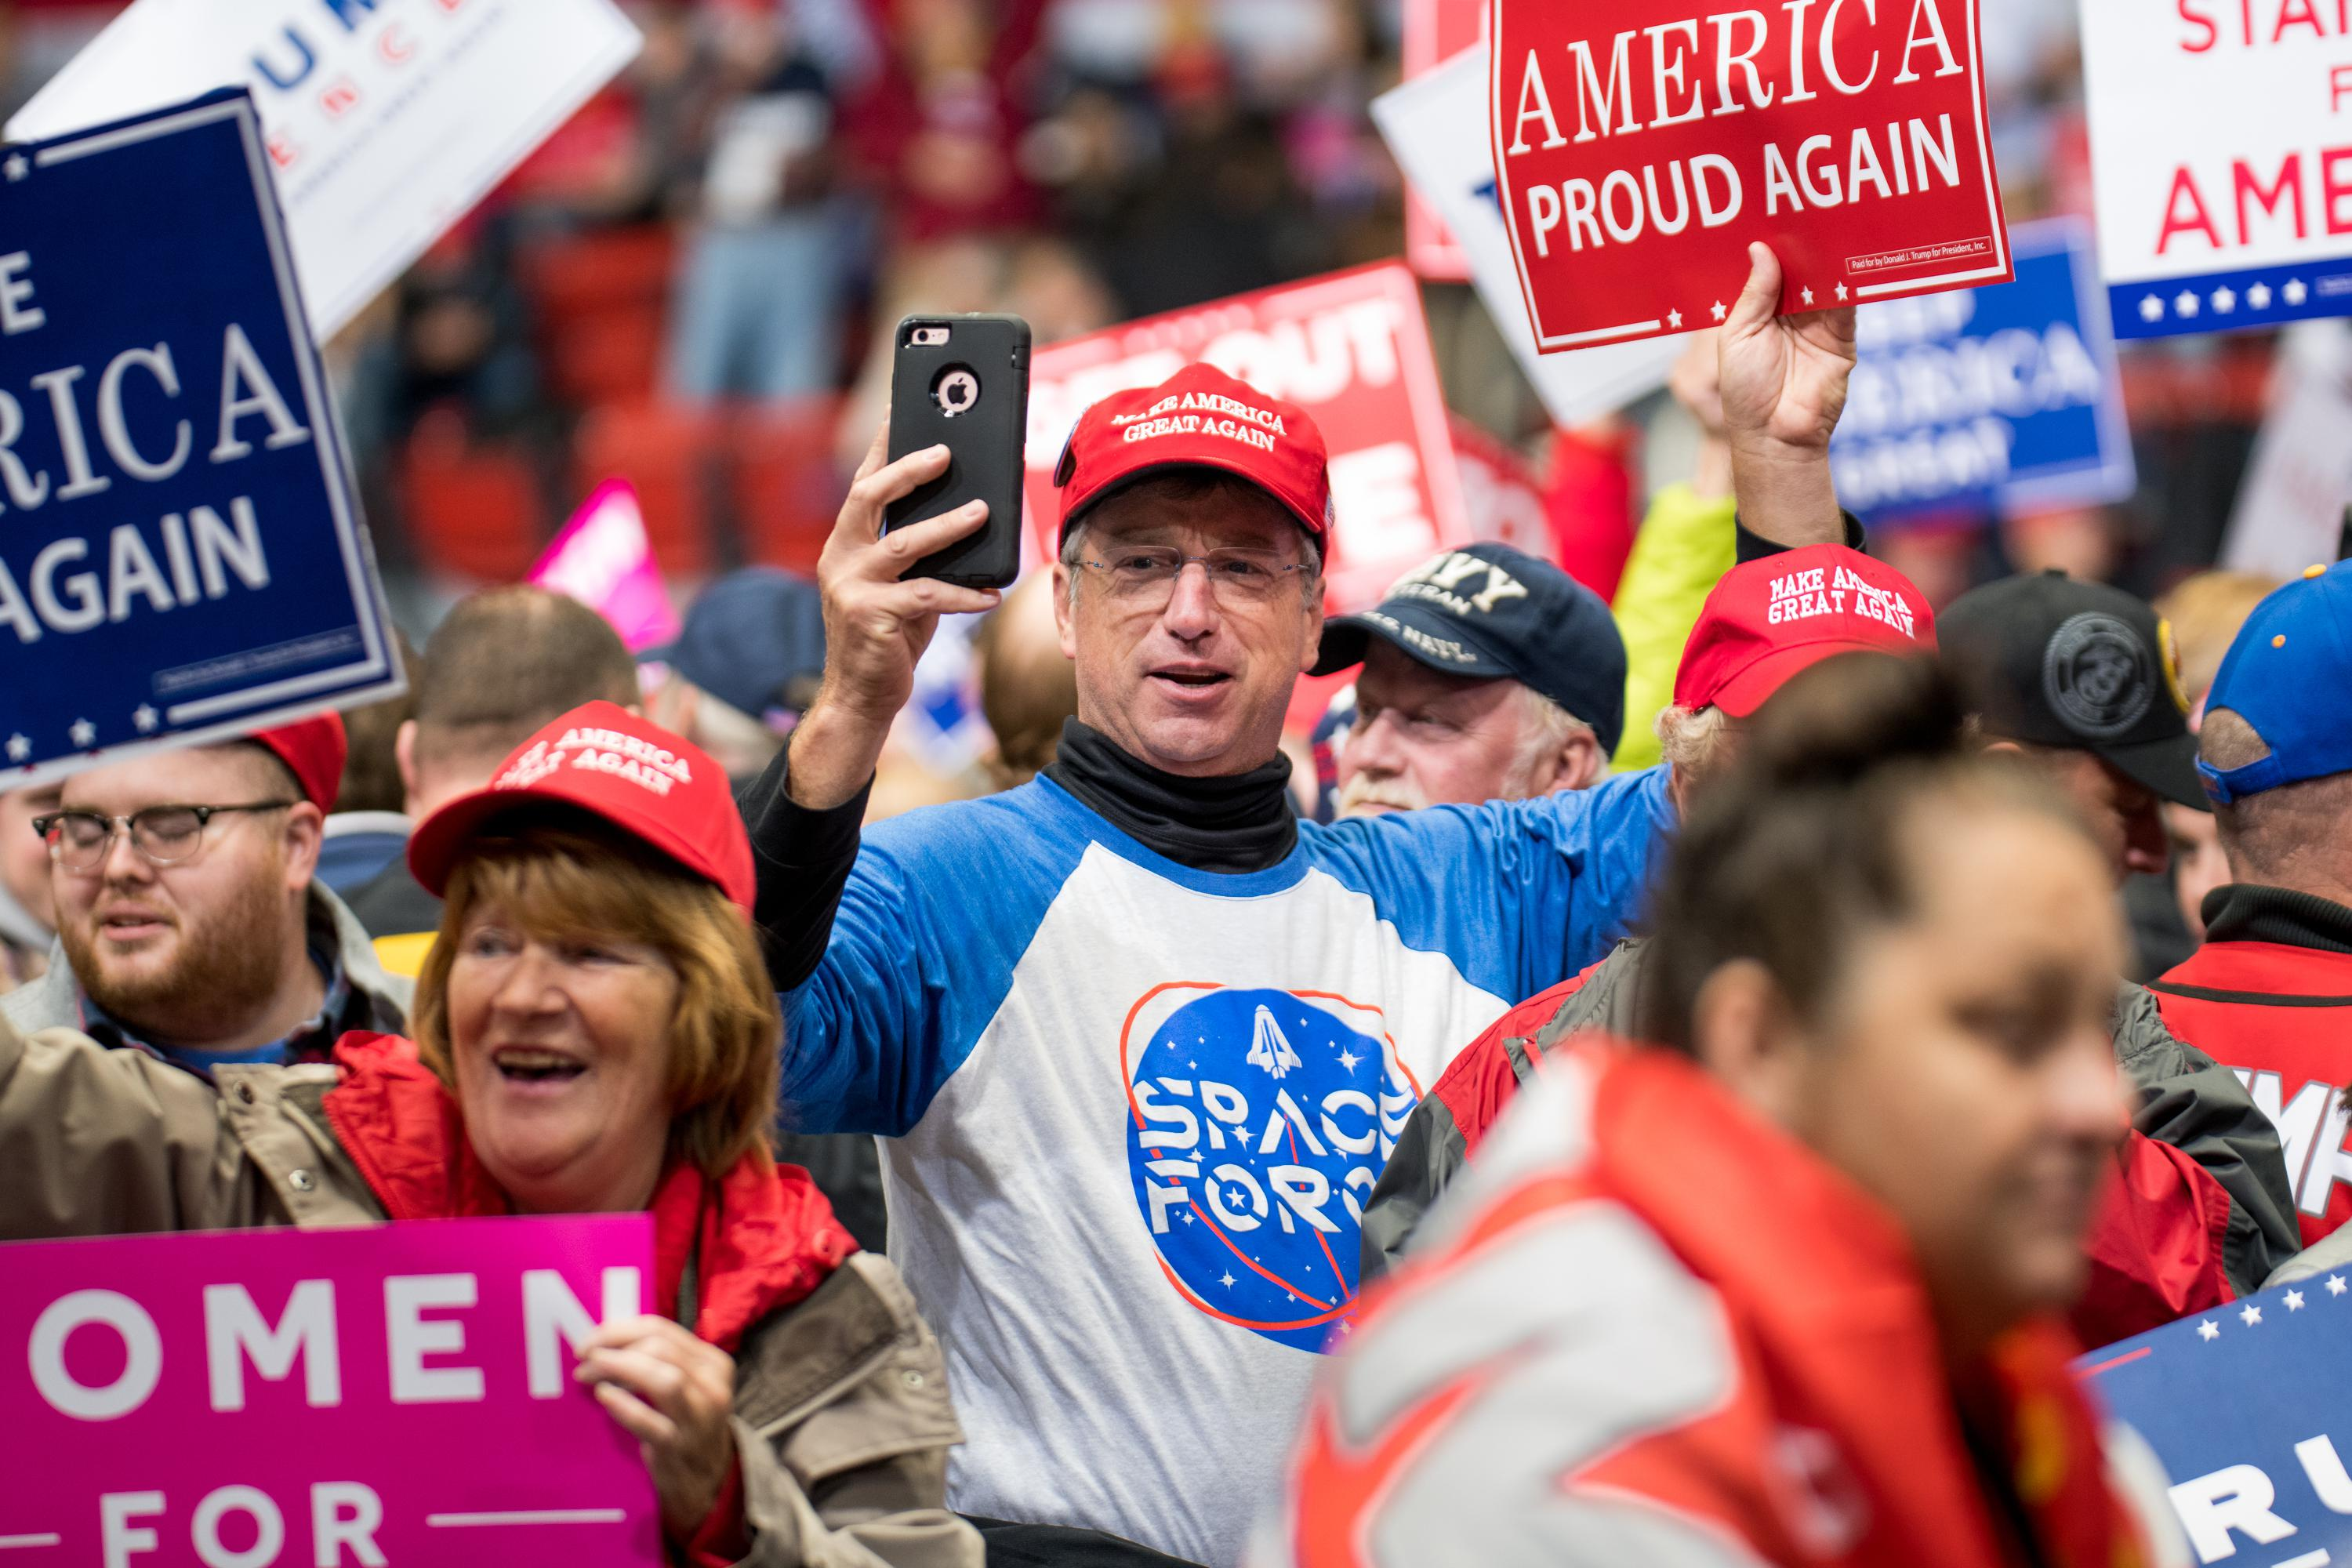 A man wearing a Space Force shirt and a MAGA hat holds his phone up to document the crowd at a Trump rally. The energetic crowd around him holds pro-Trump signs.